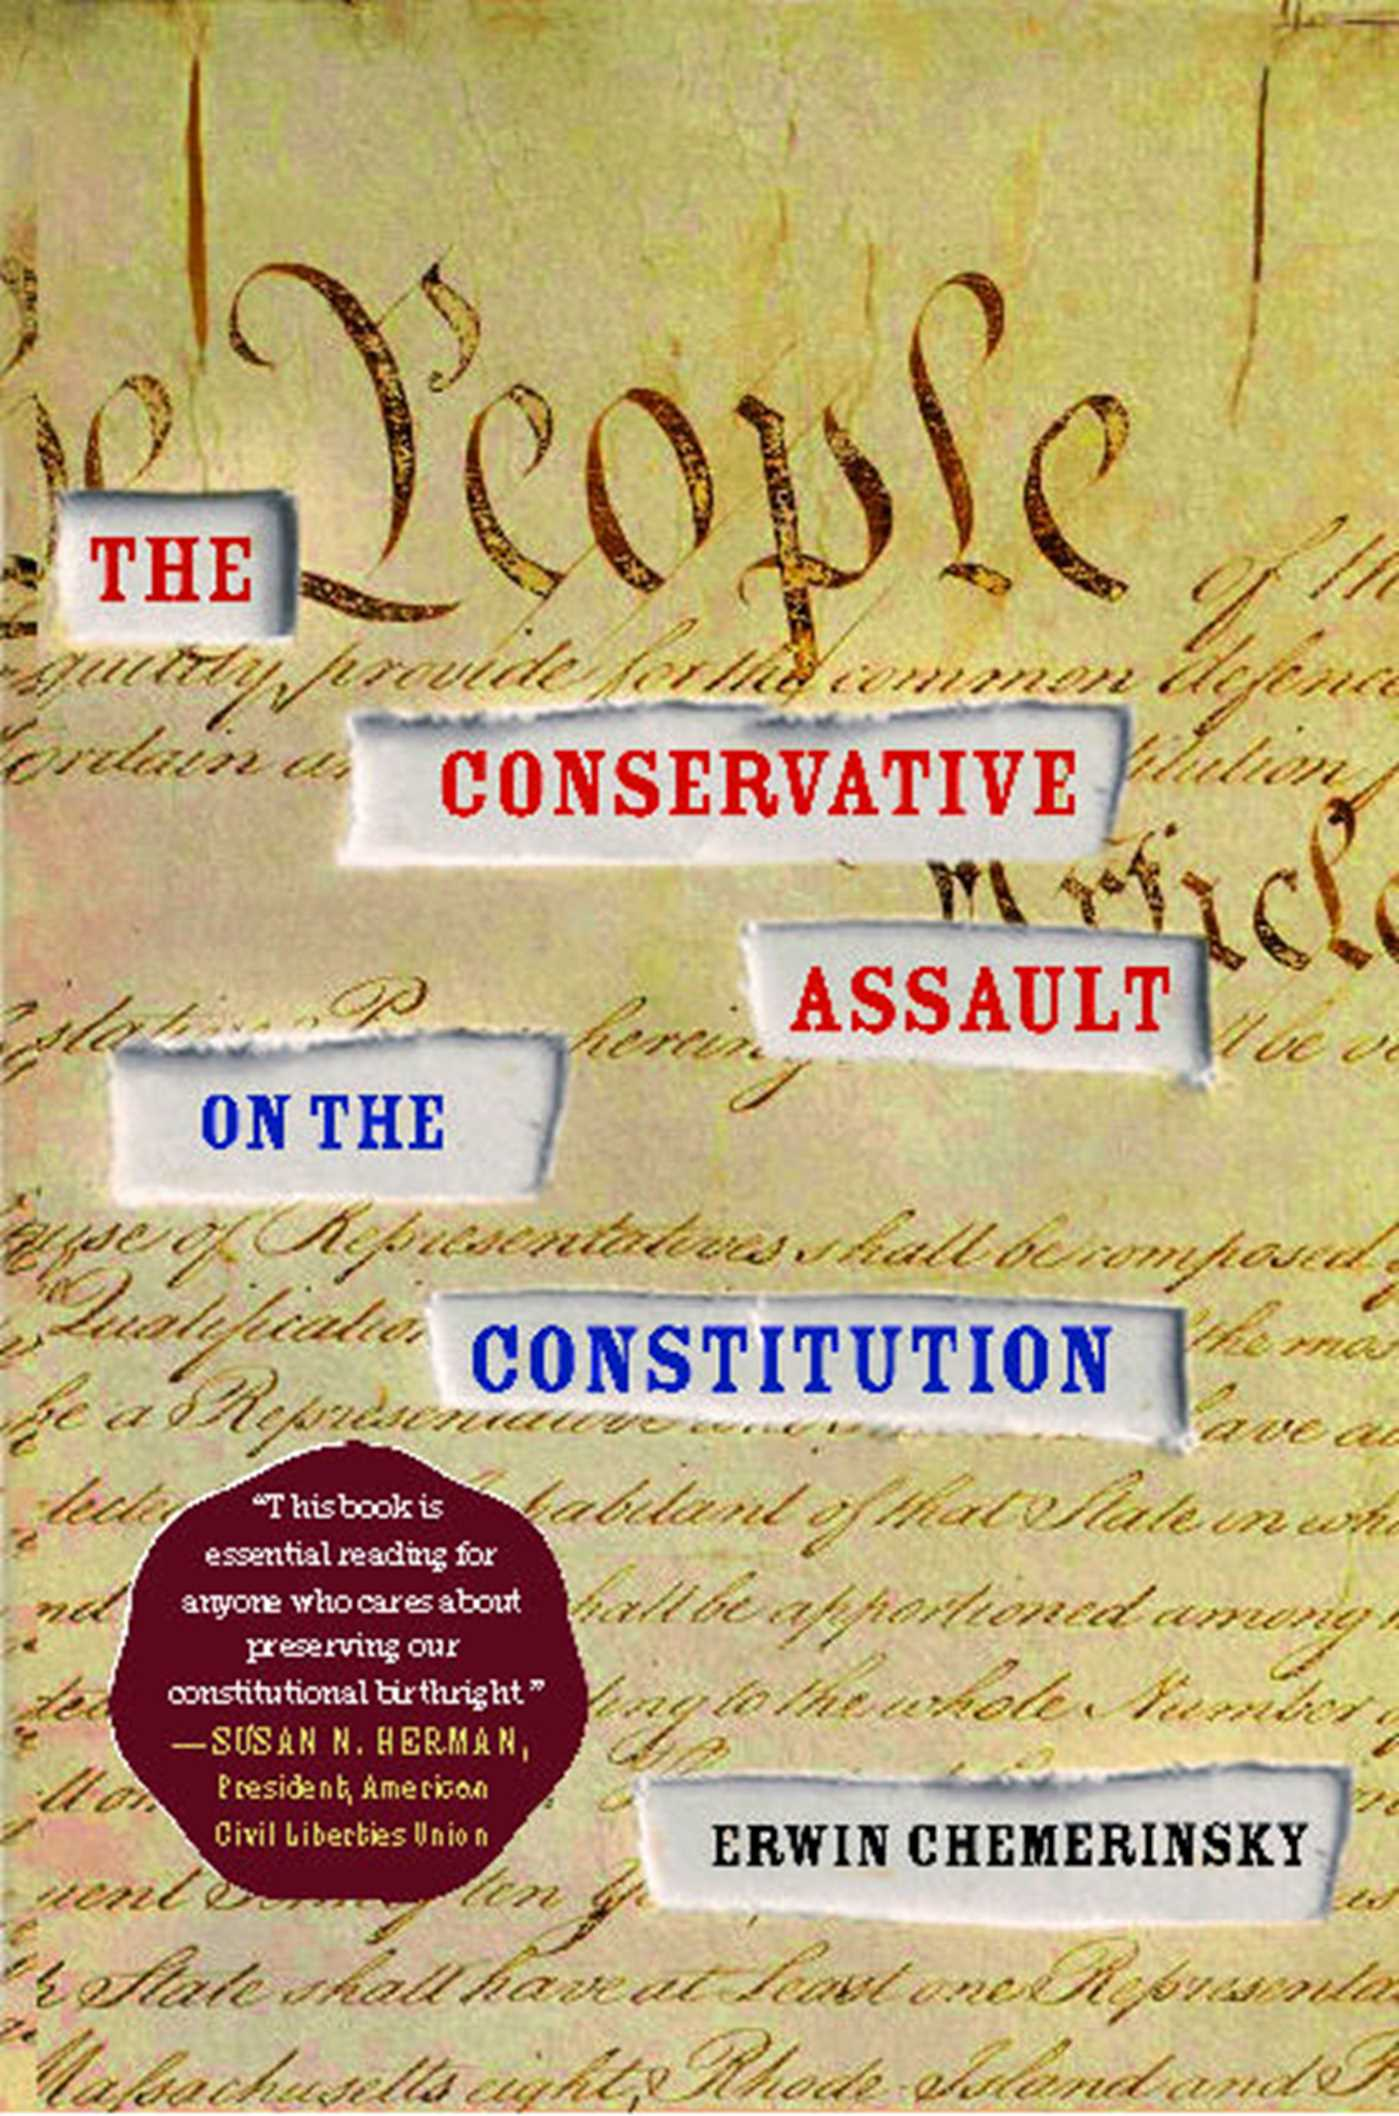 The conservative assault on the constitution 9781451606355 hr